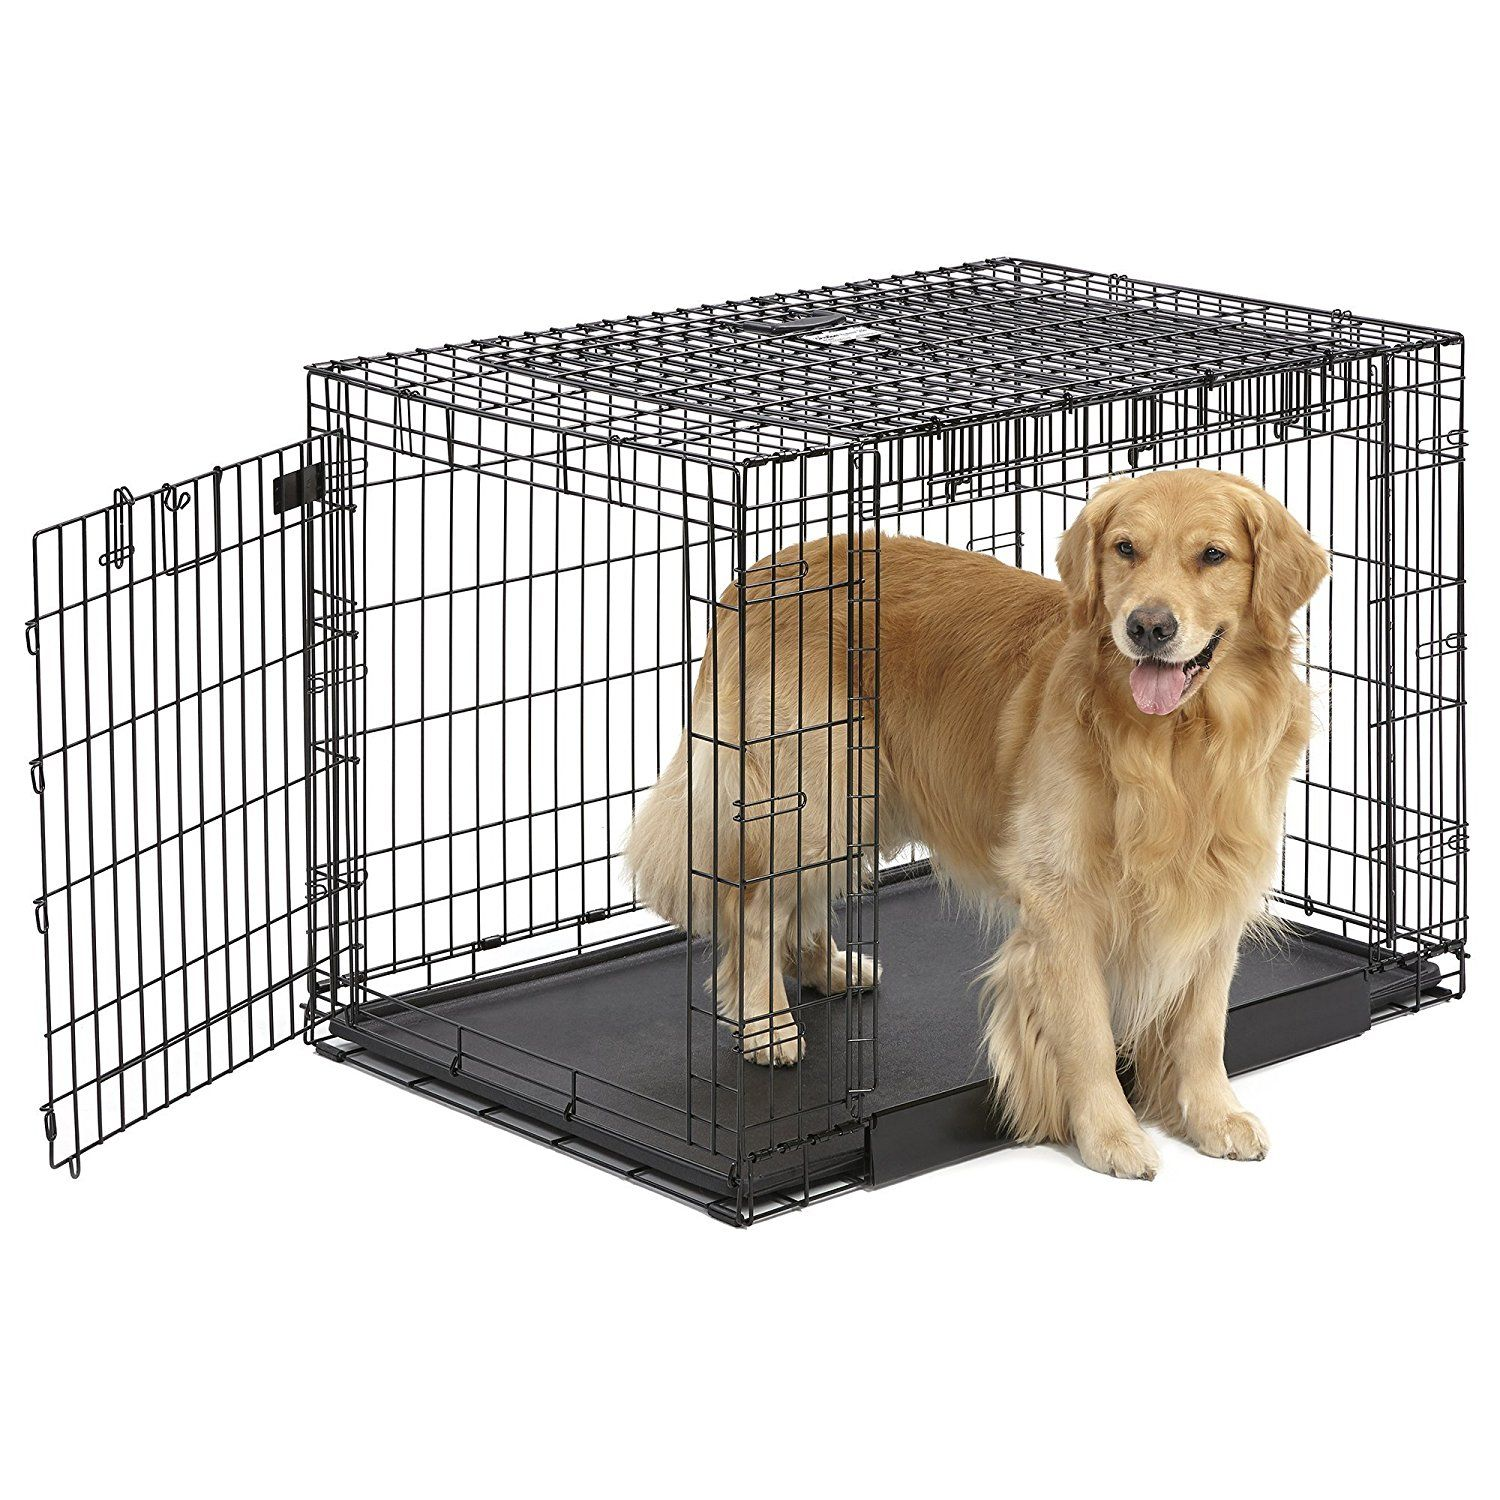 Midwest Homes For Pets Ovation Dog Crate Tried It Love It Click The Image Dog Carrier Dog Crate Dog Fence Dogs